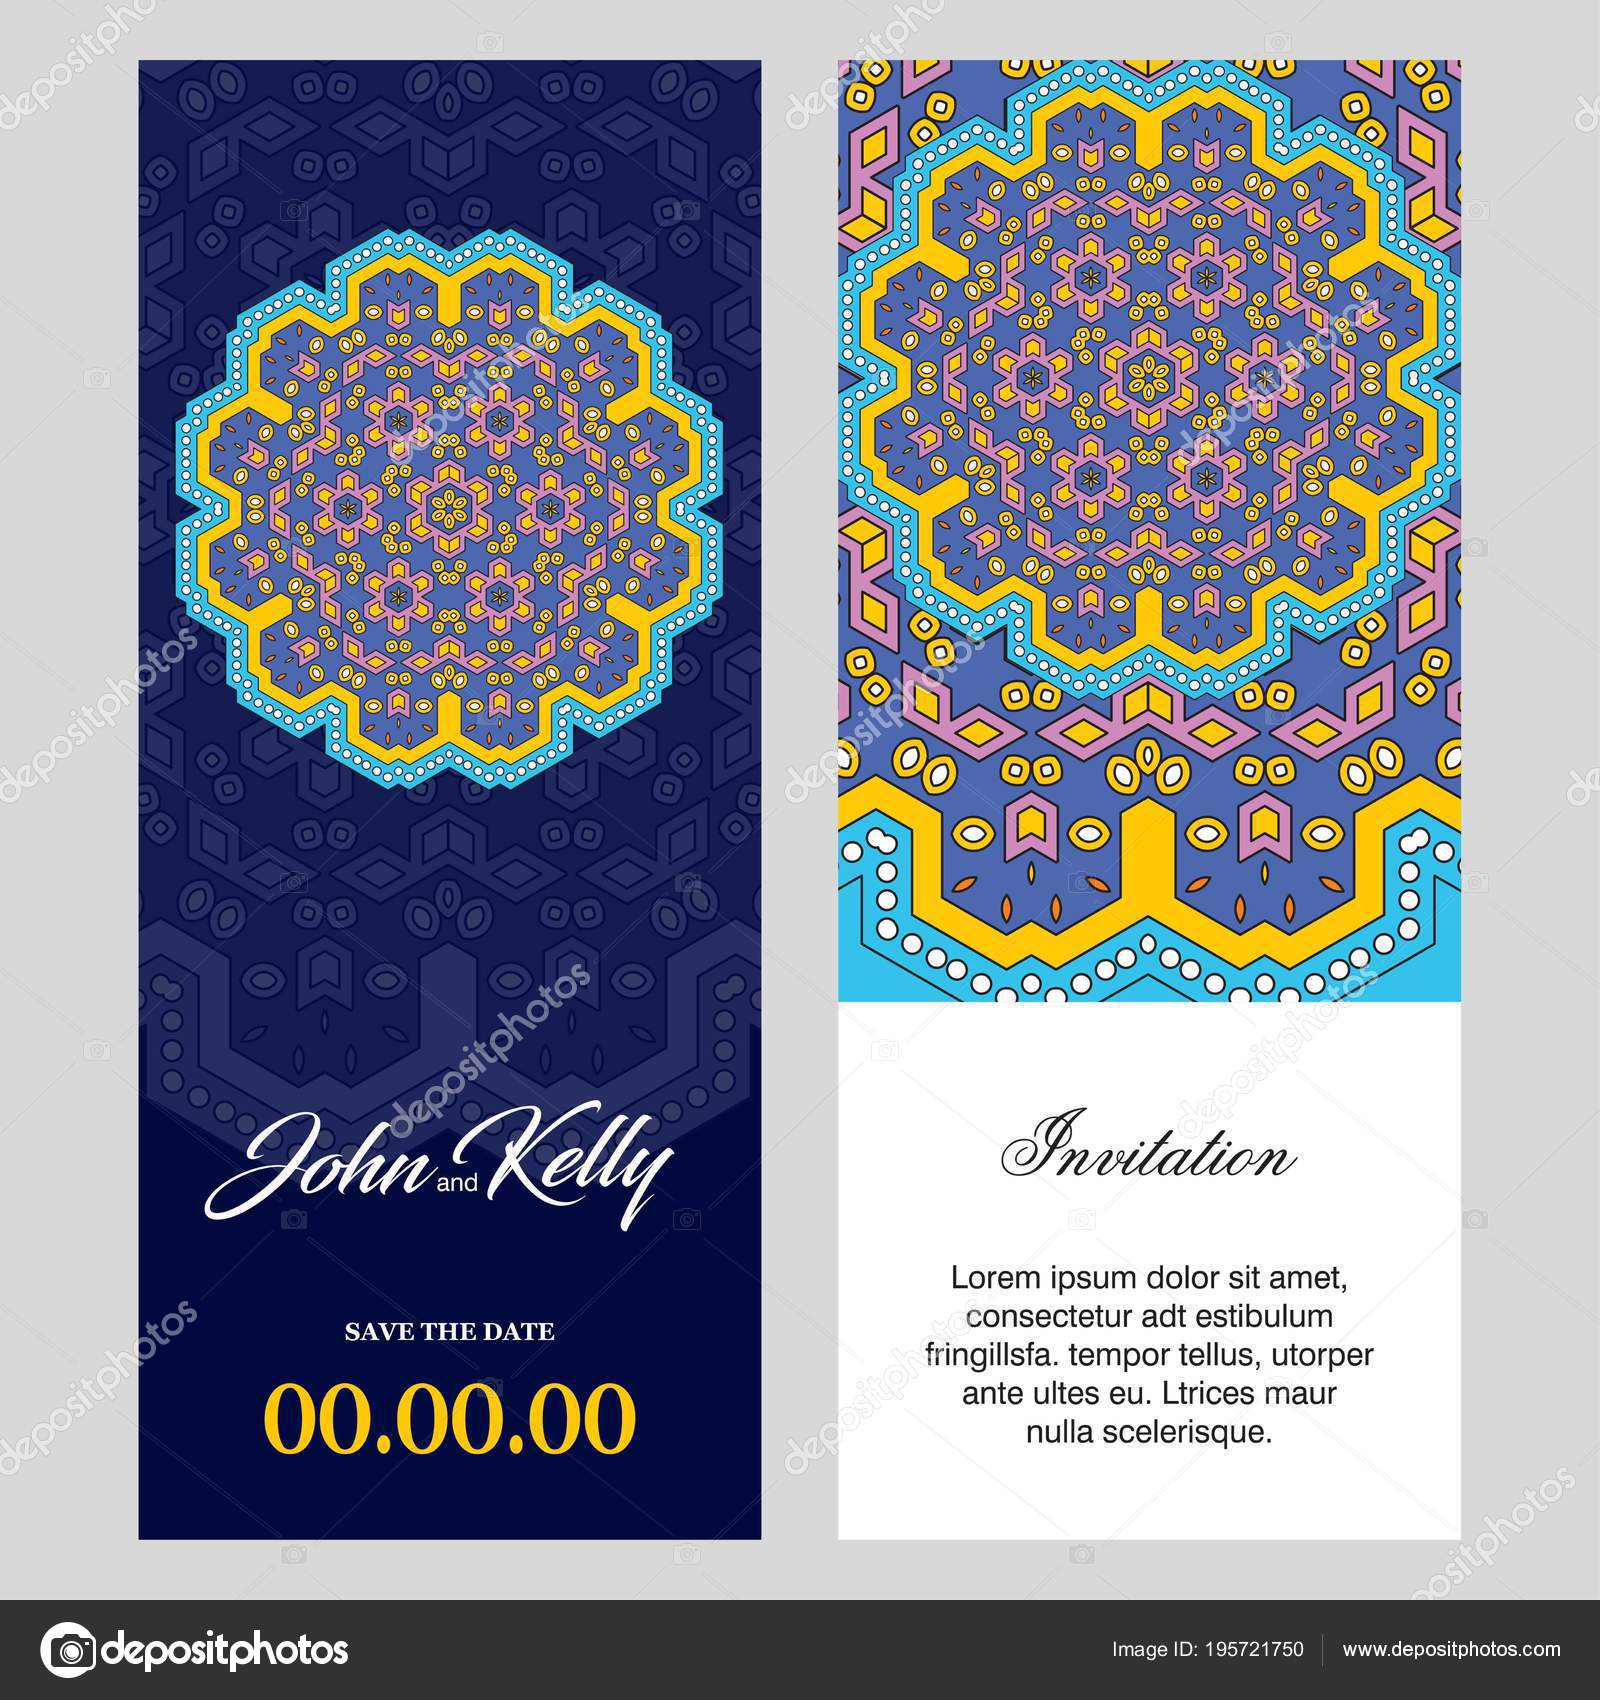 ᐈ Pakistani Wedding Cards Stock Pictures Royalty Free Wedding Cards Designs In Pakistan Vectors Download On Depositphotos